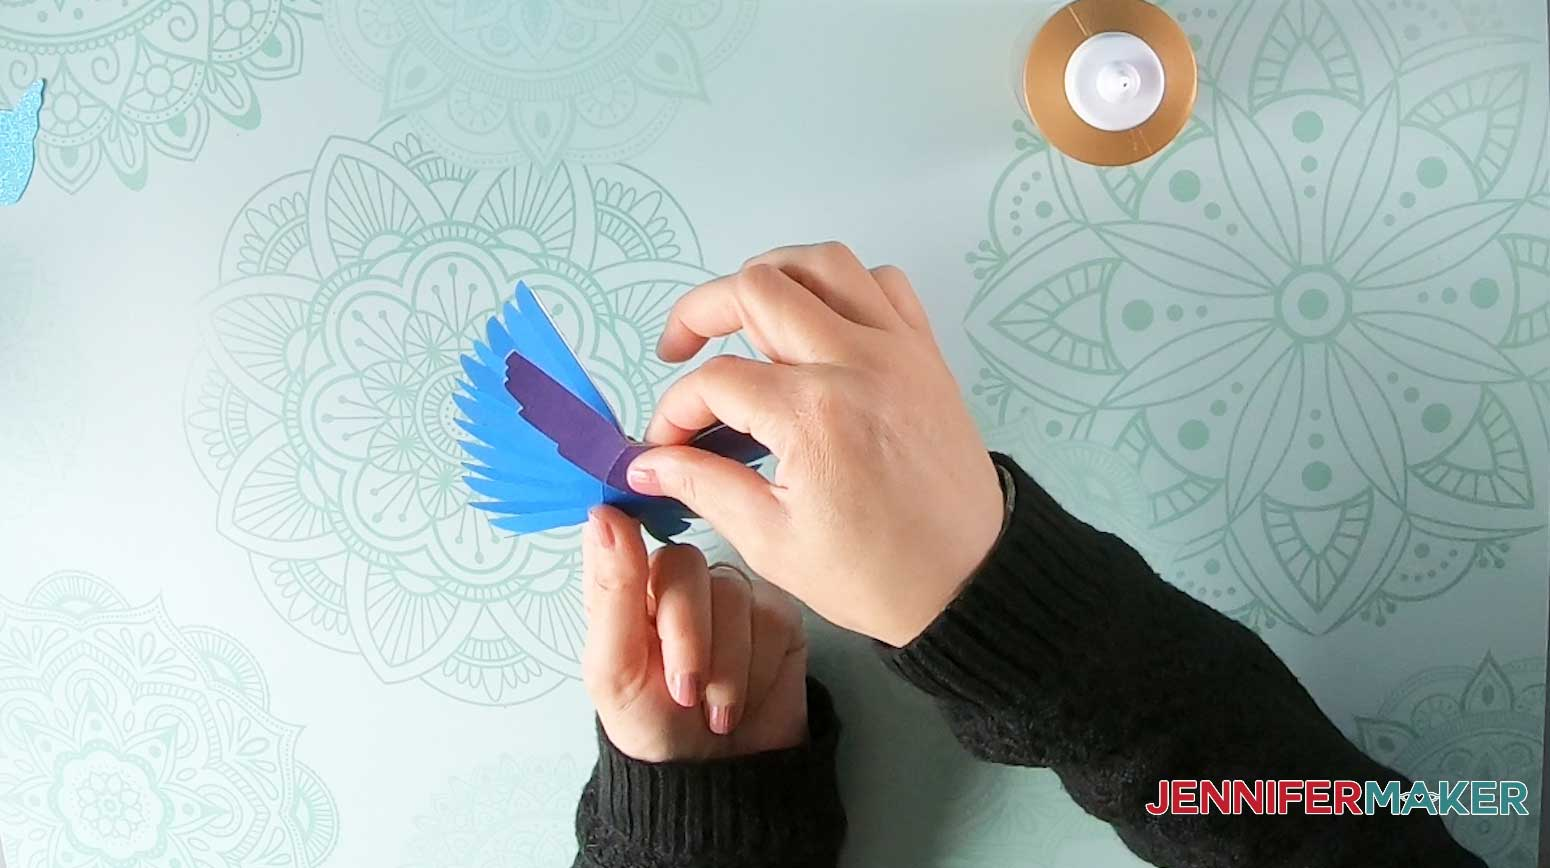 Glue the paper bird bottom decorative accent piece onto the underside of the wing